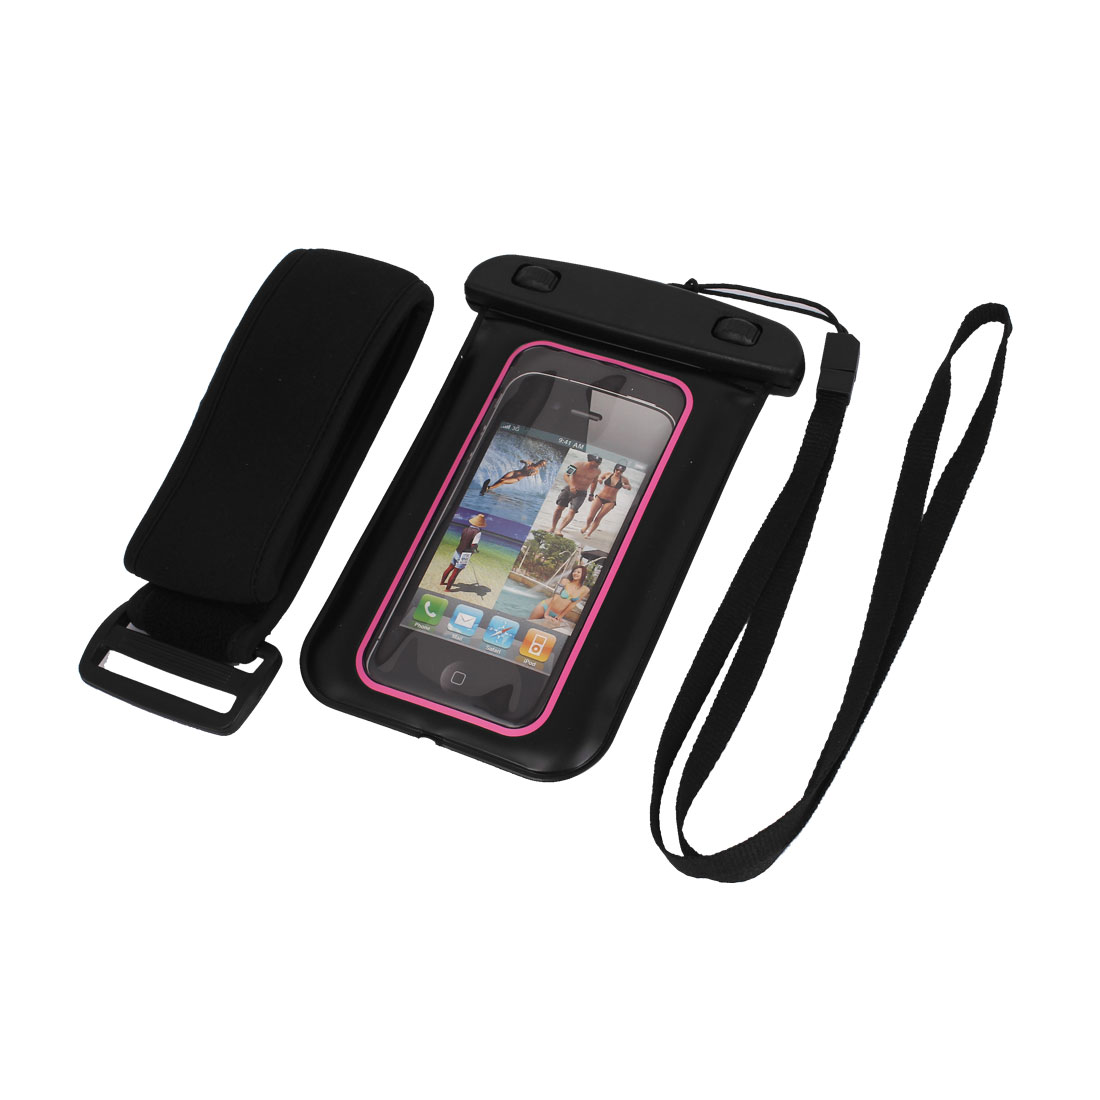 Waterproof Case Dry Bag Skin Cover Pouch Sleeve Black Pink for iPhone 5 5C 5S